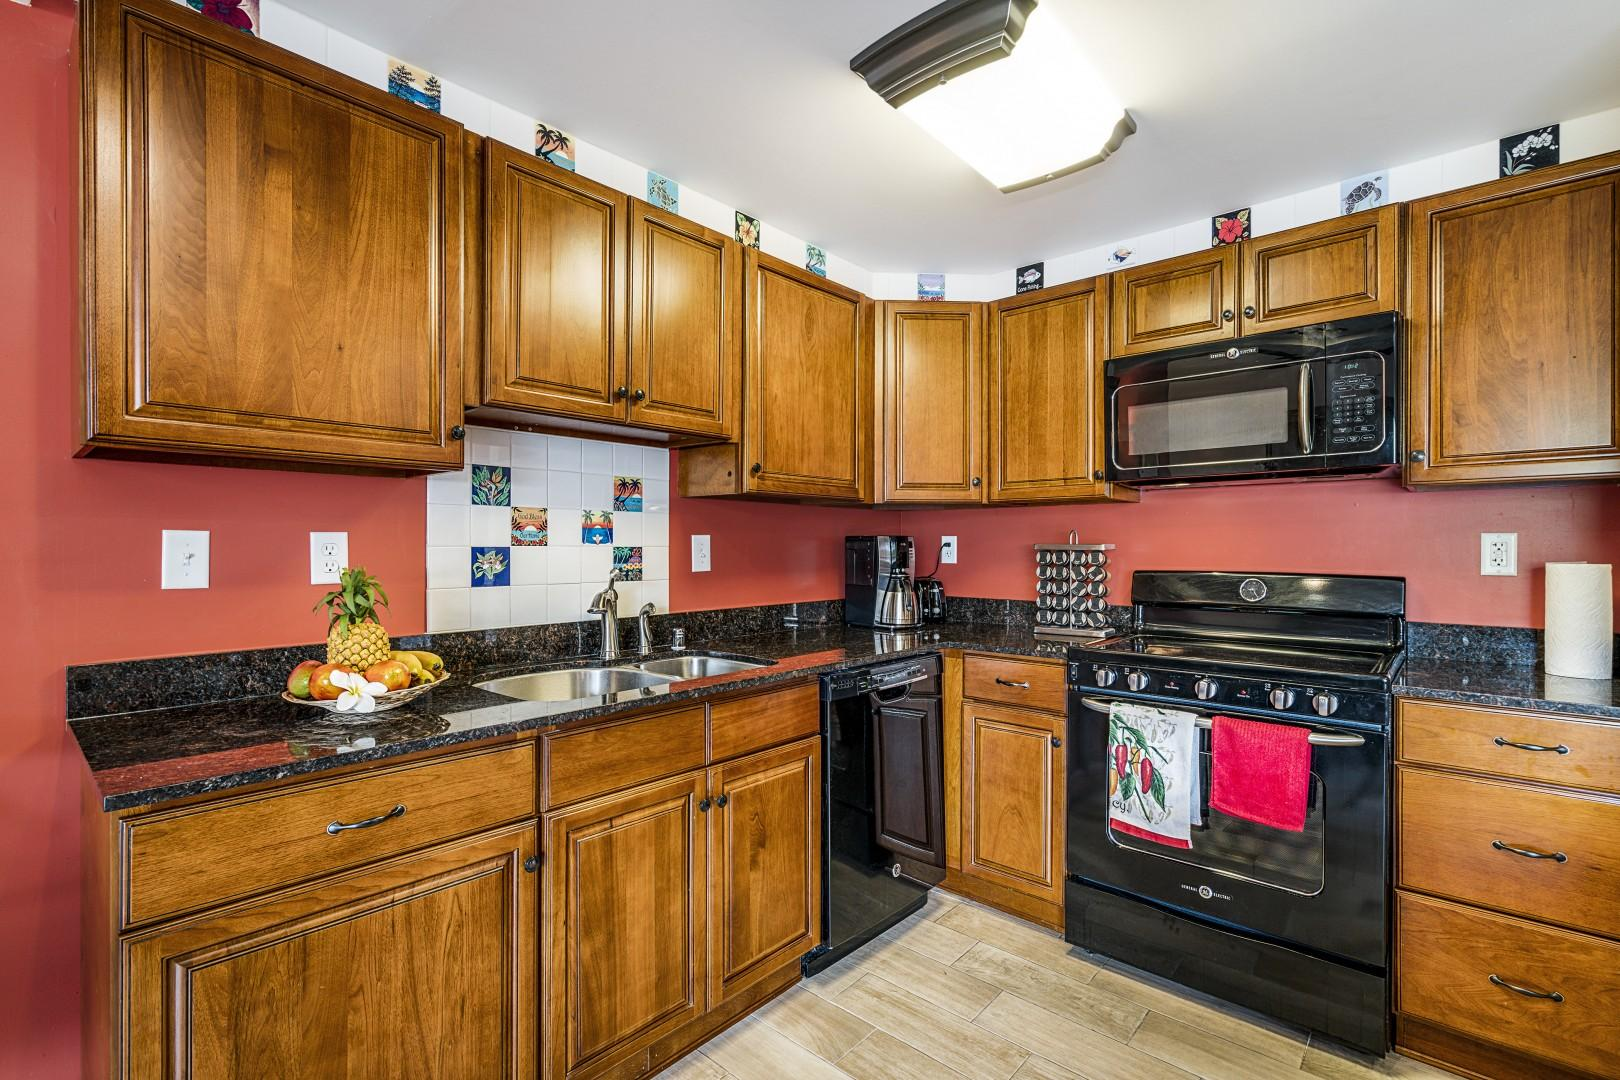 Beautiful kitchen with all the essentials to make a wonderful home cooked meal!